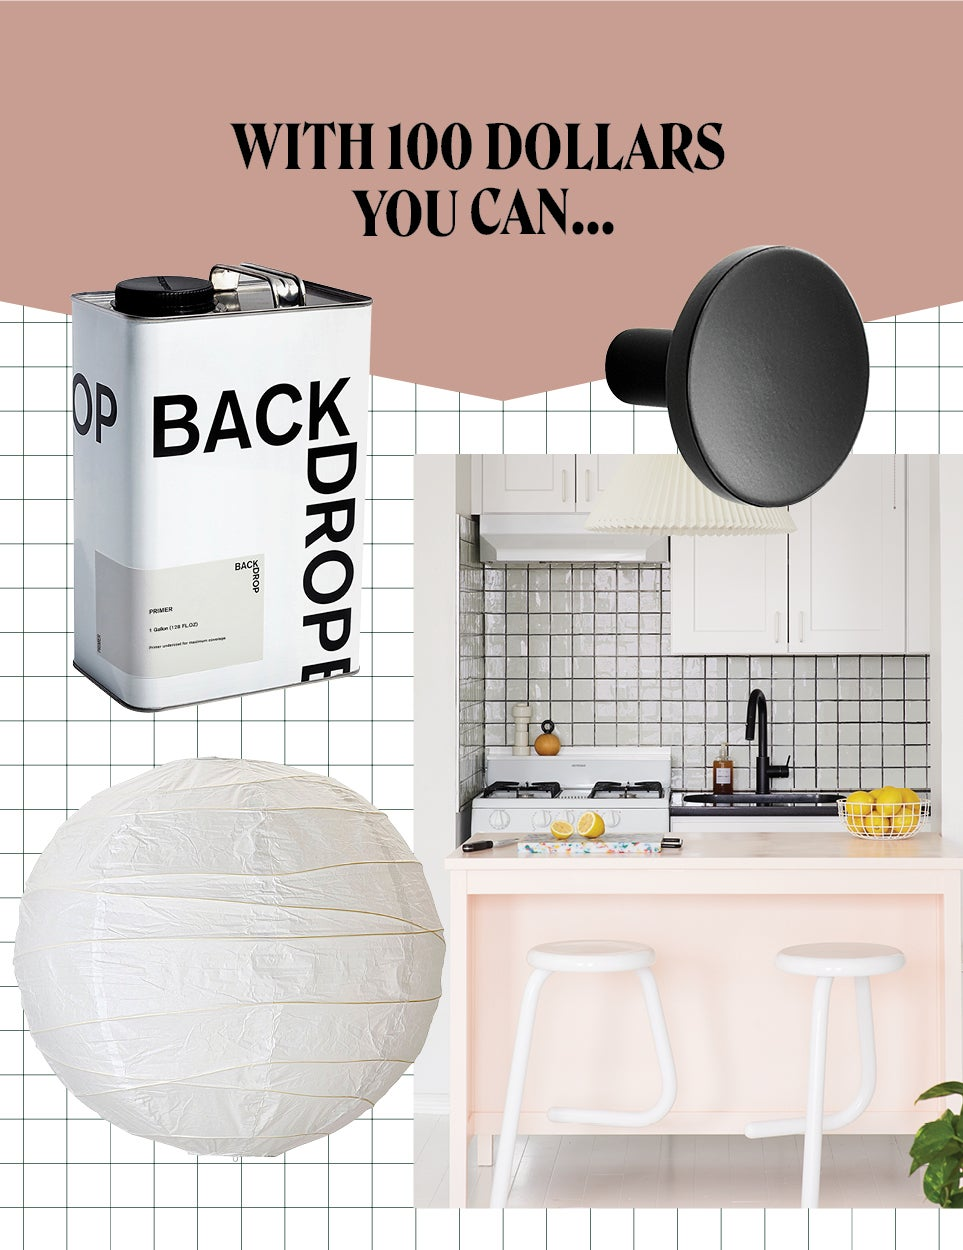 5 Renovations You Can Make to Your Kitchen When You Only Have $100